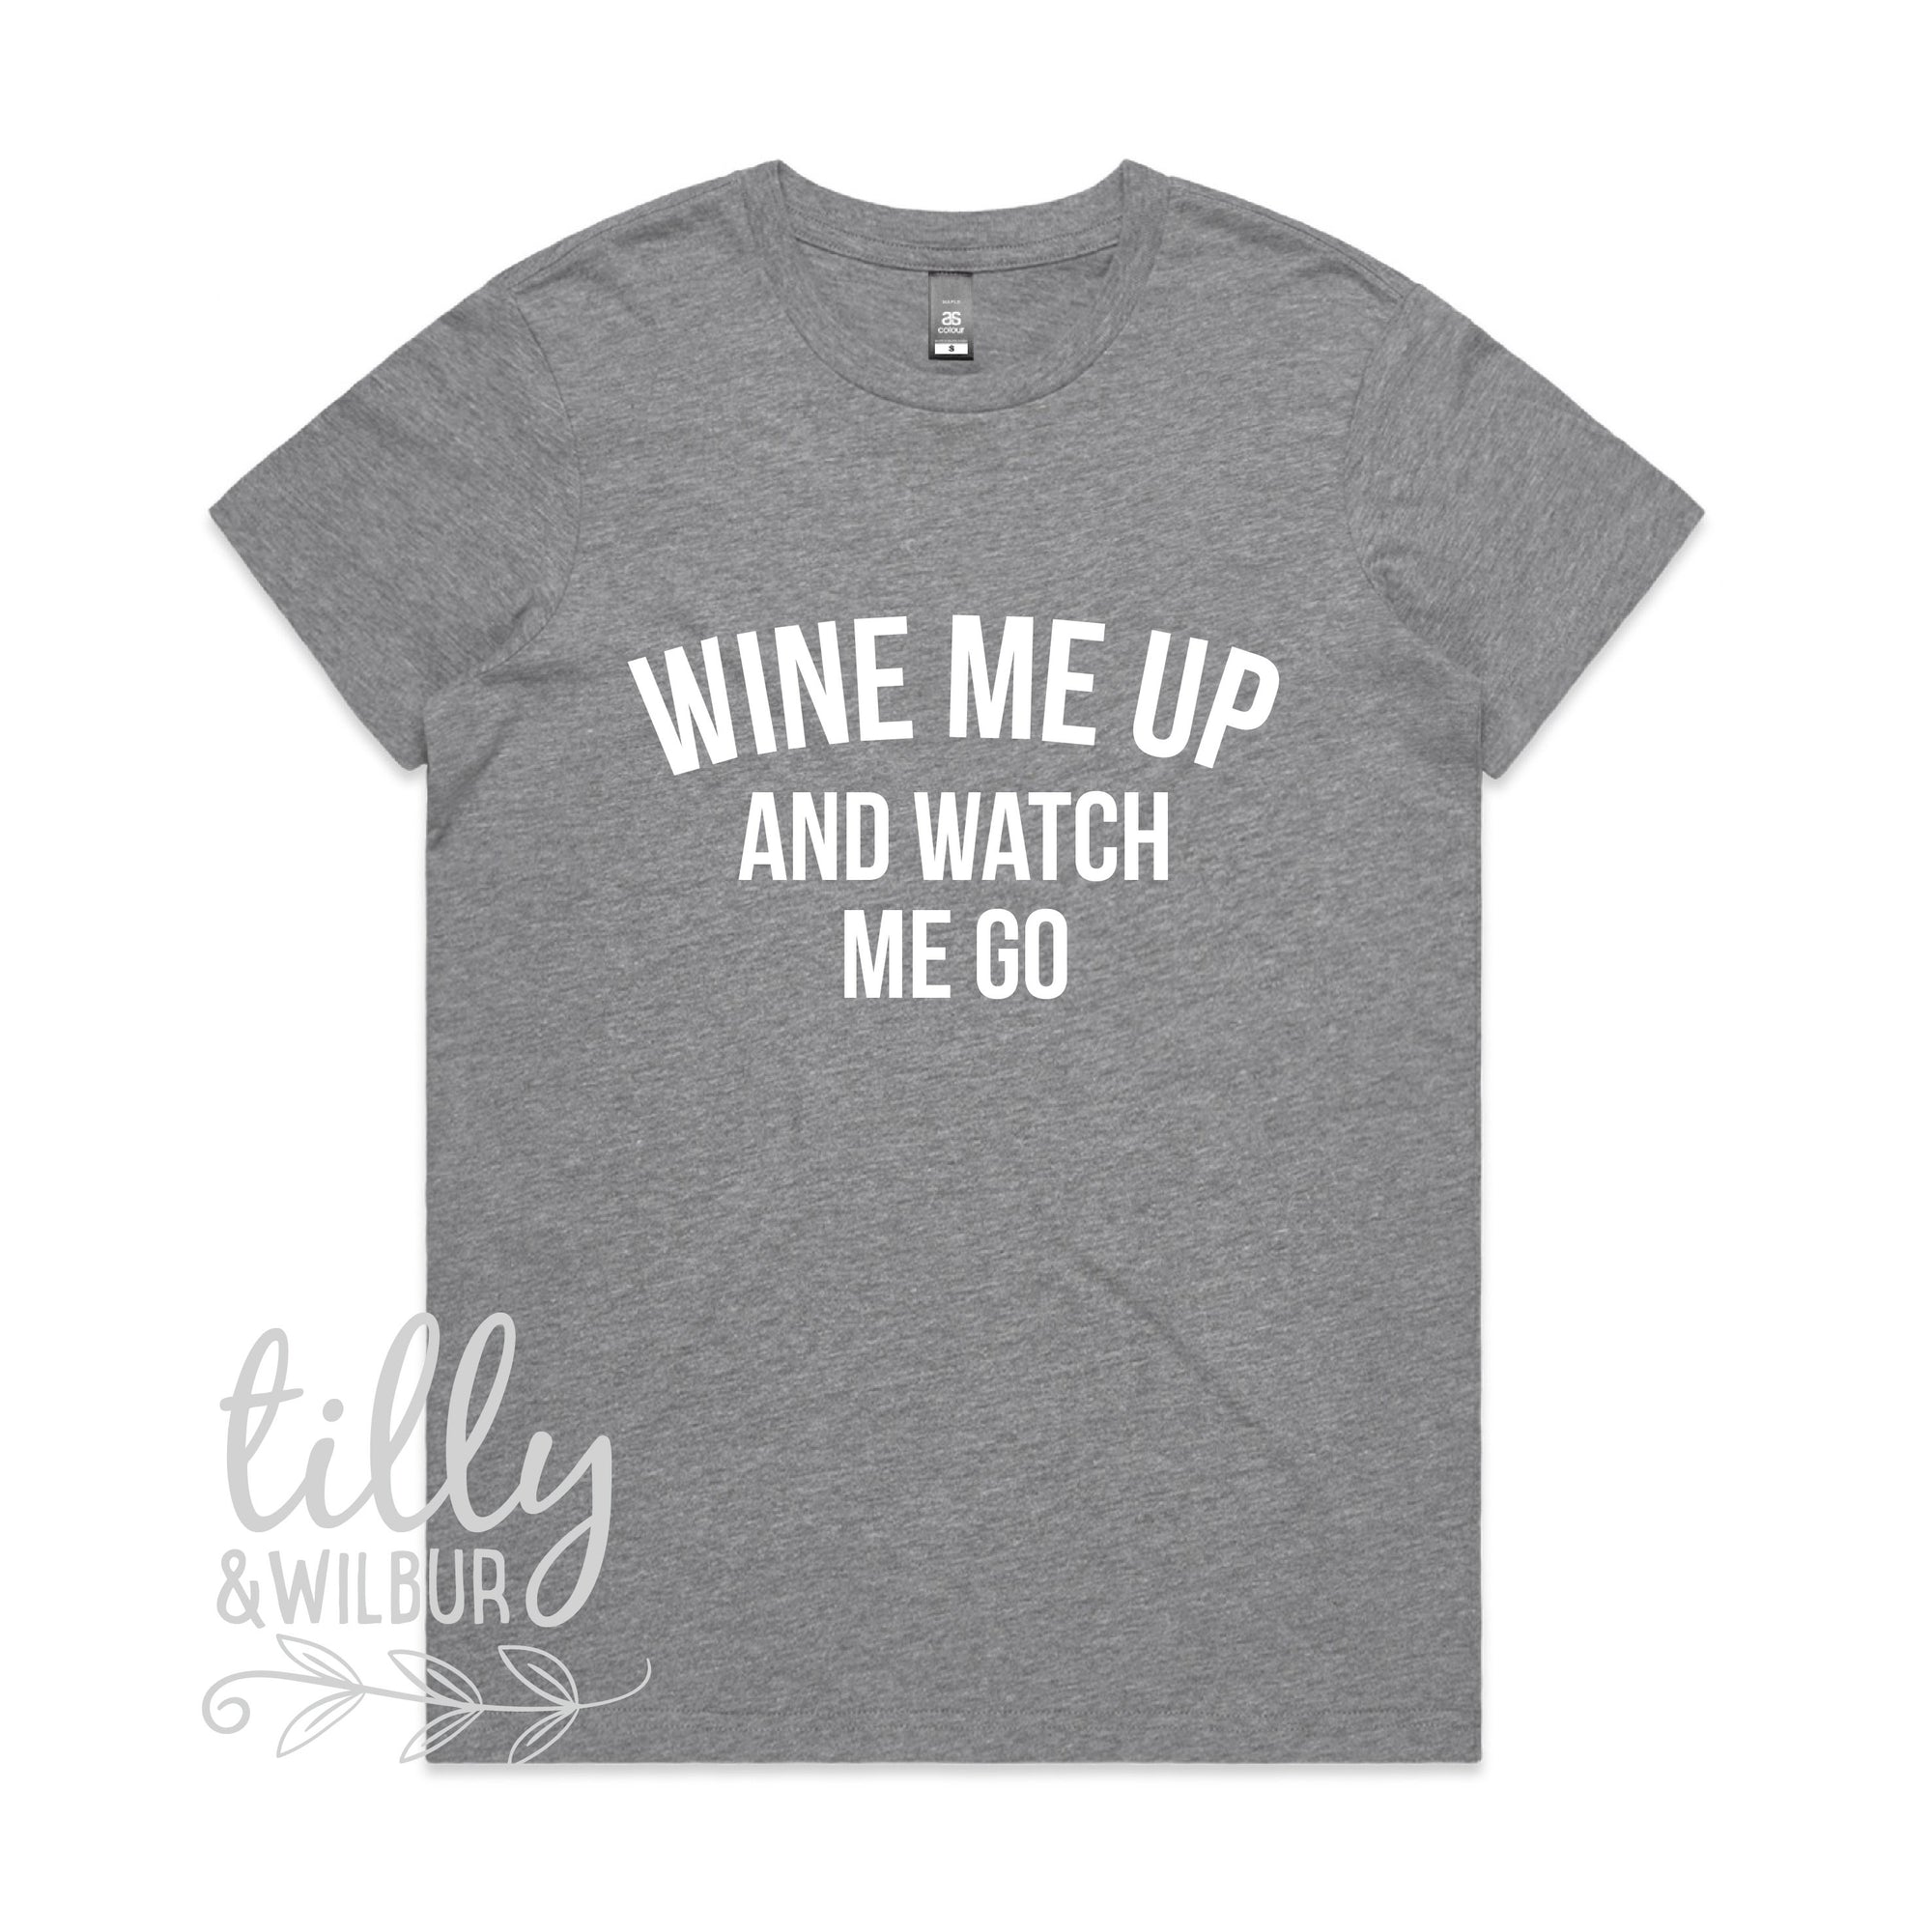 Wine Me Up And Watch Me Go Women's T-Shirt, Wine T-Shirt, Mother's Day Gift, Wine Lover, Gift For Her, Female Birthday, Wine Shirt Gift